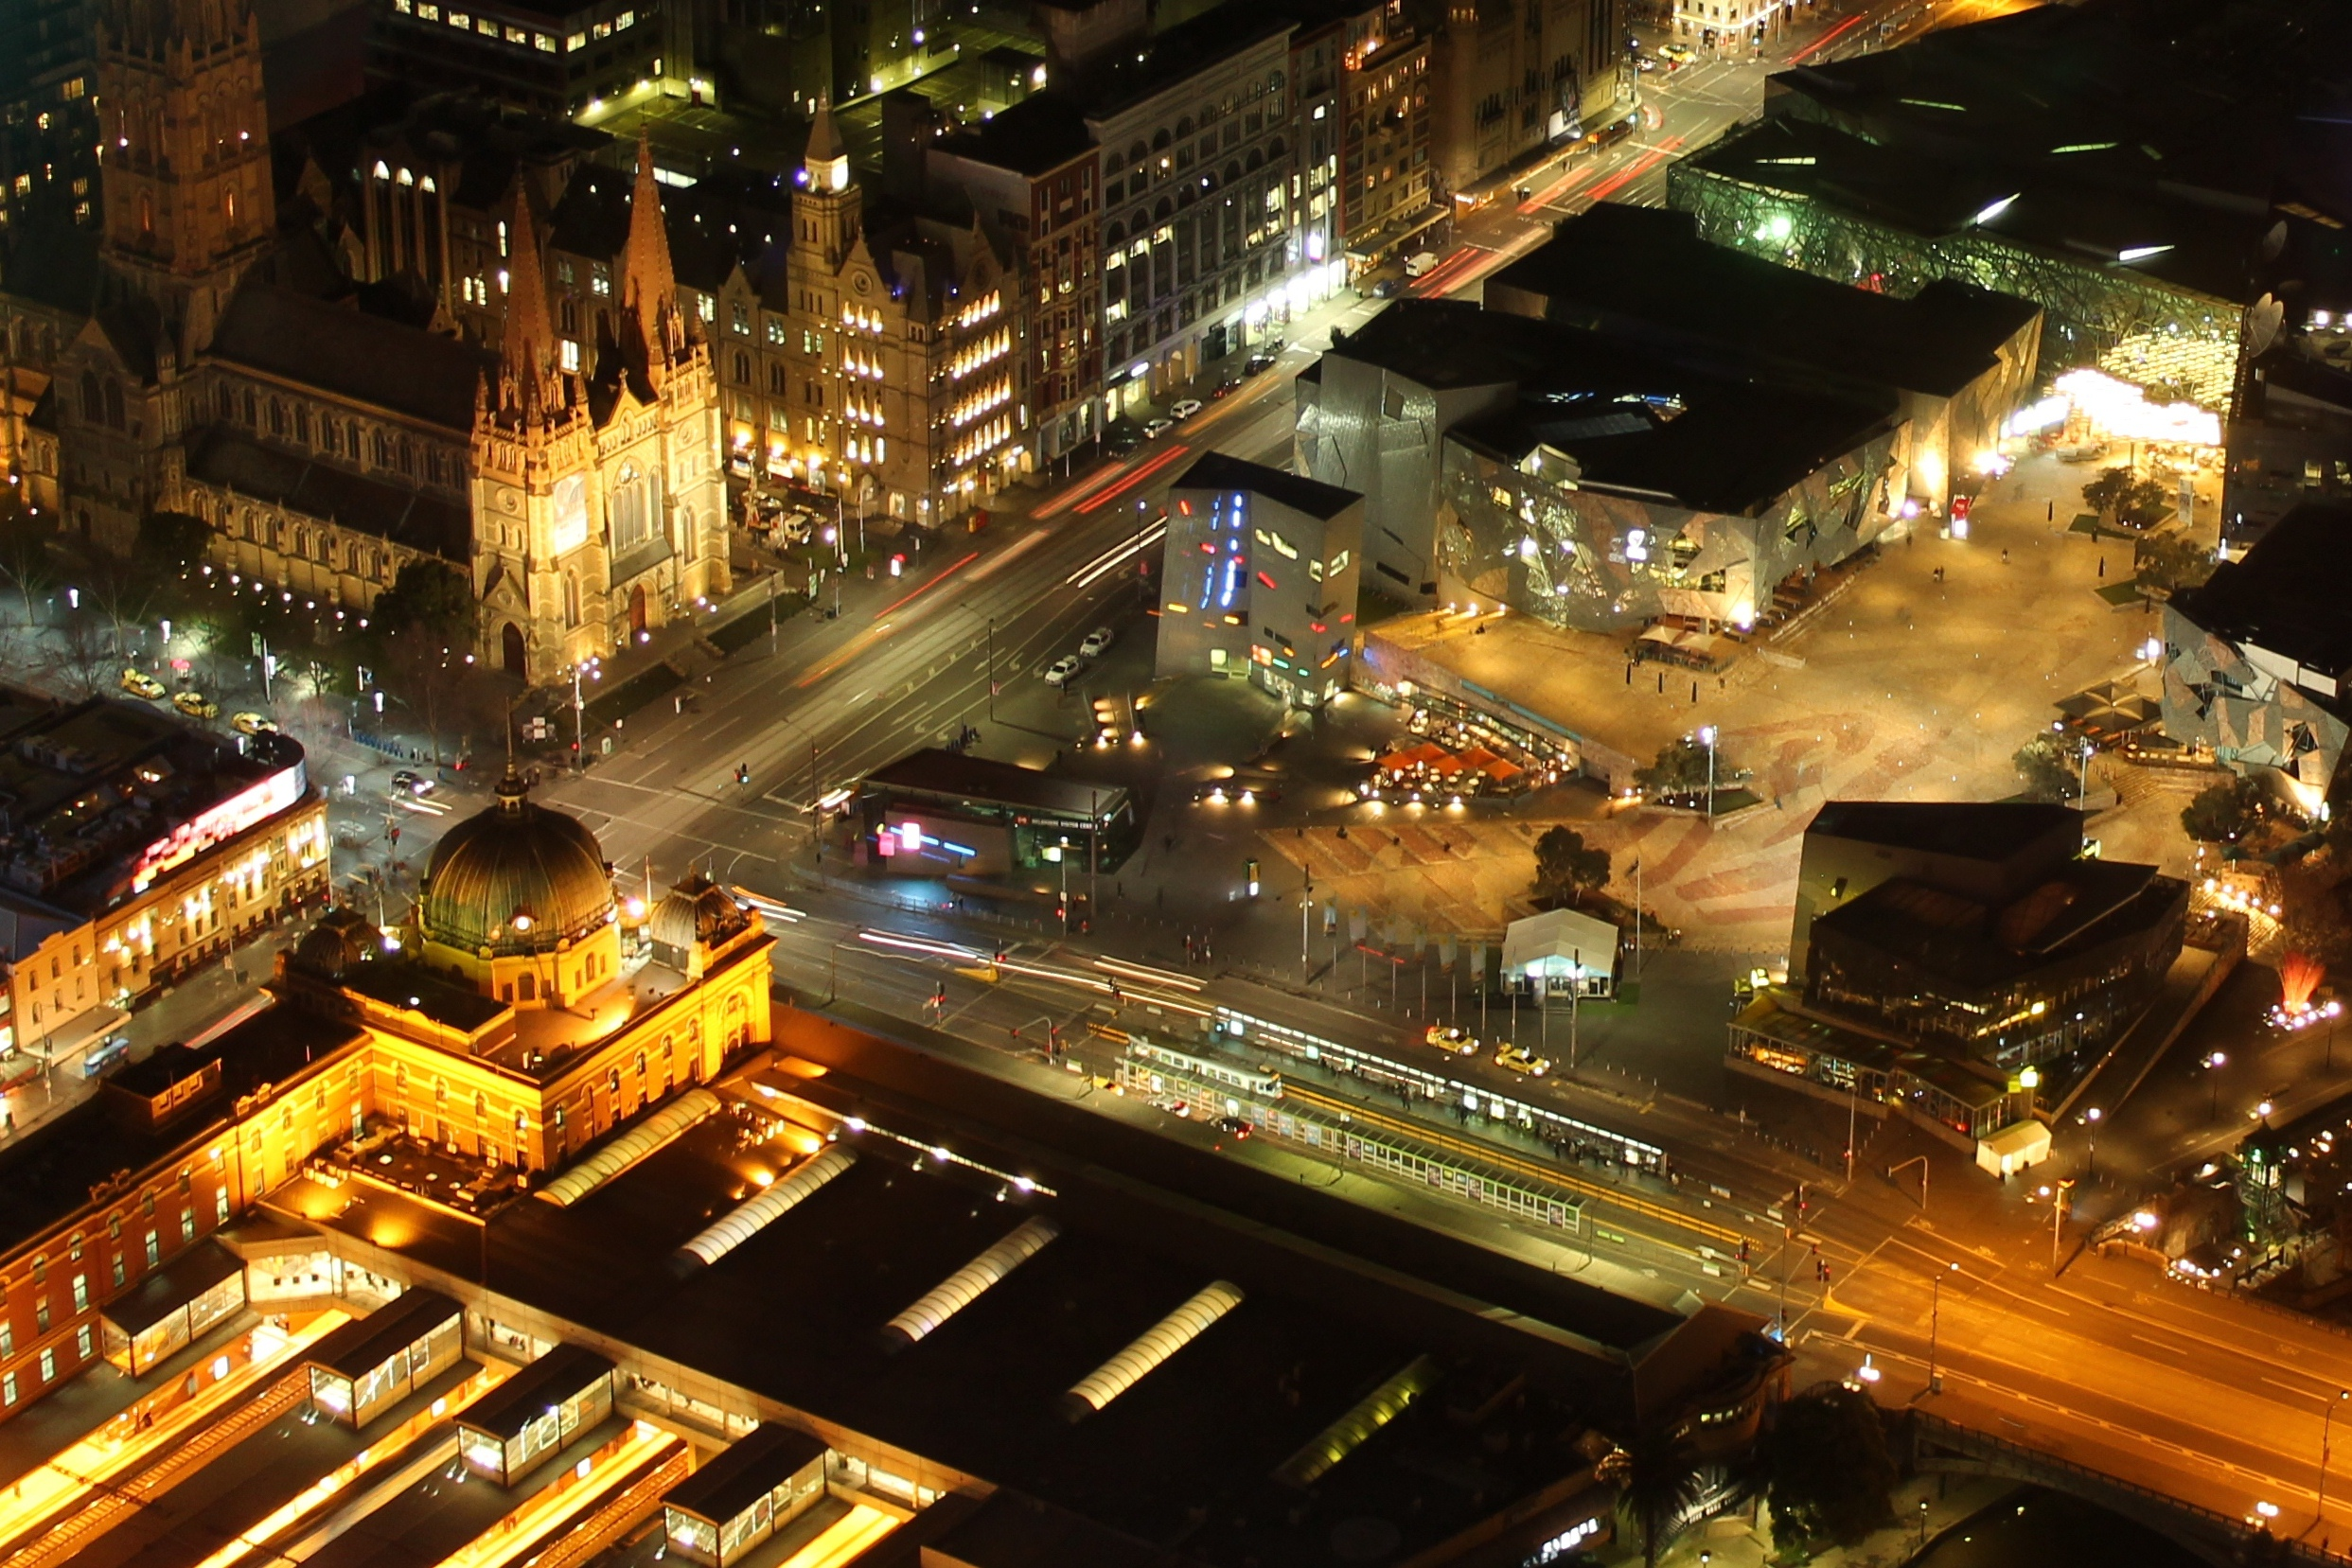 Many buildings, such as those at Flinders Street and Federation Square, are floodlit at night for aesthetic reasons. Photo: Anne Aulsebrook